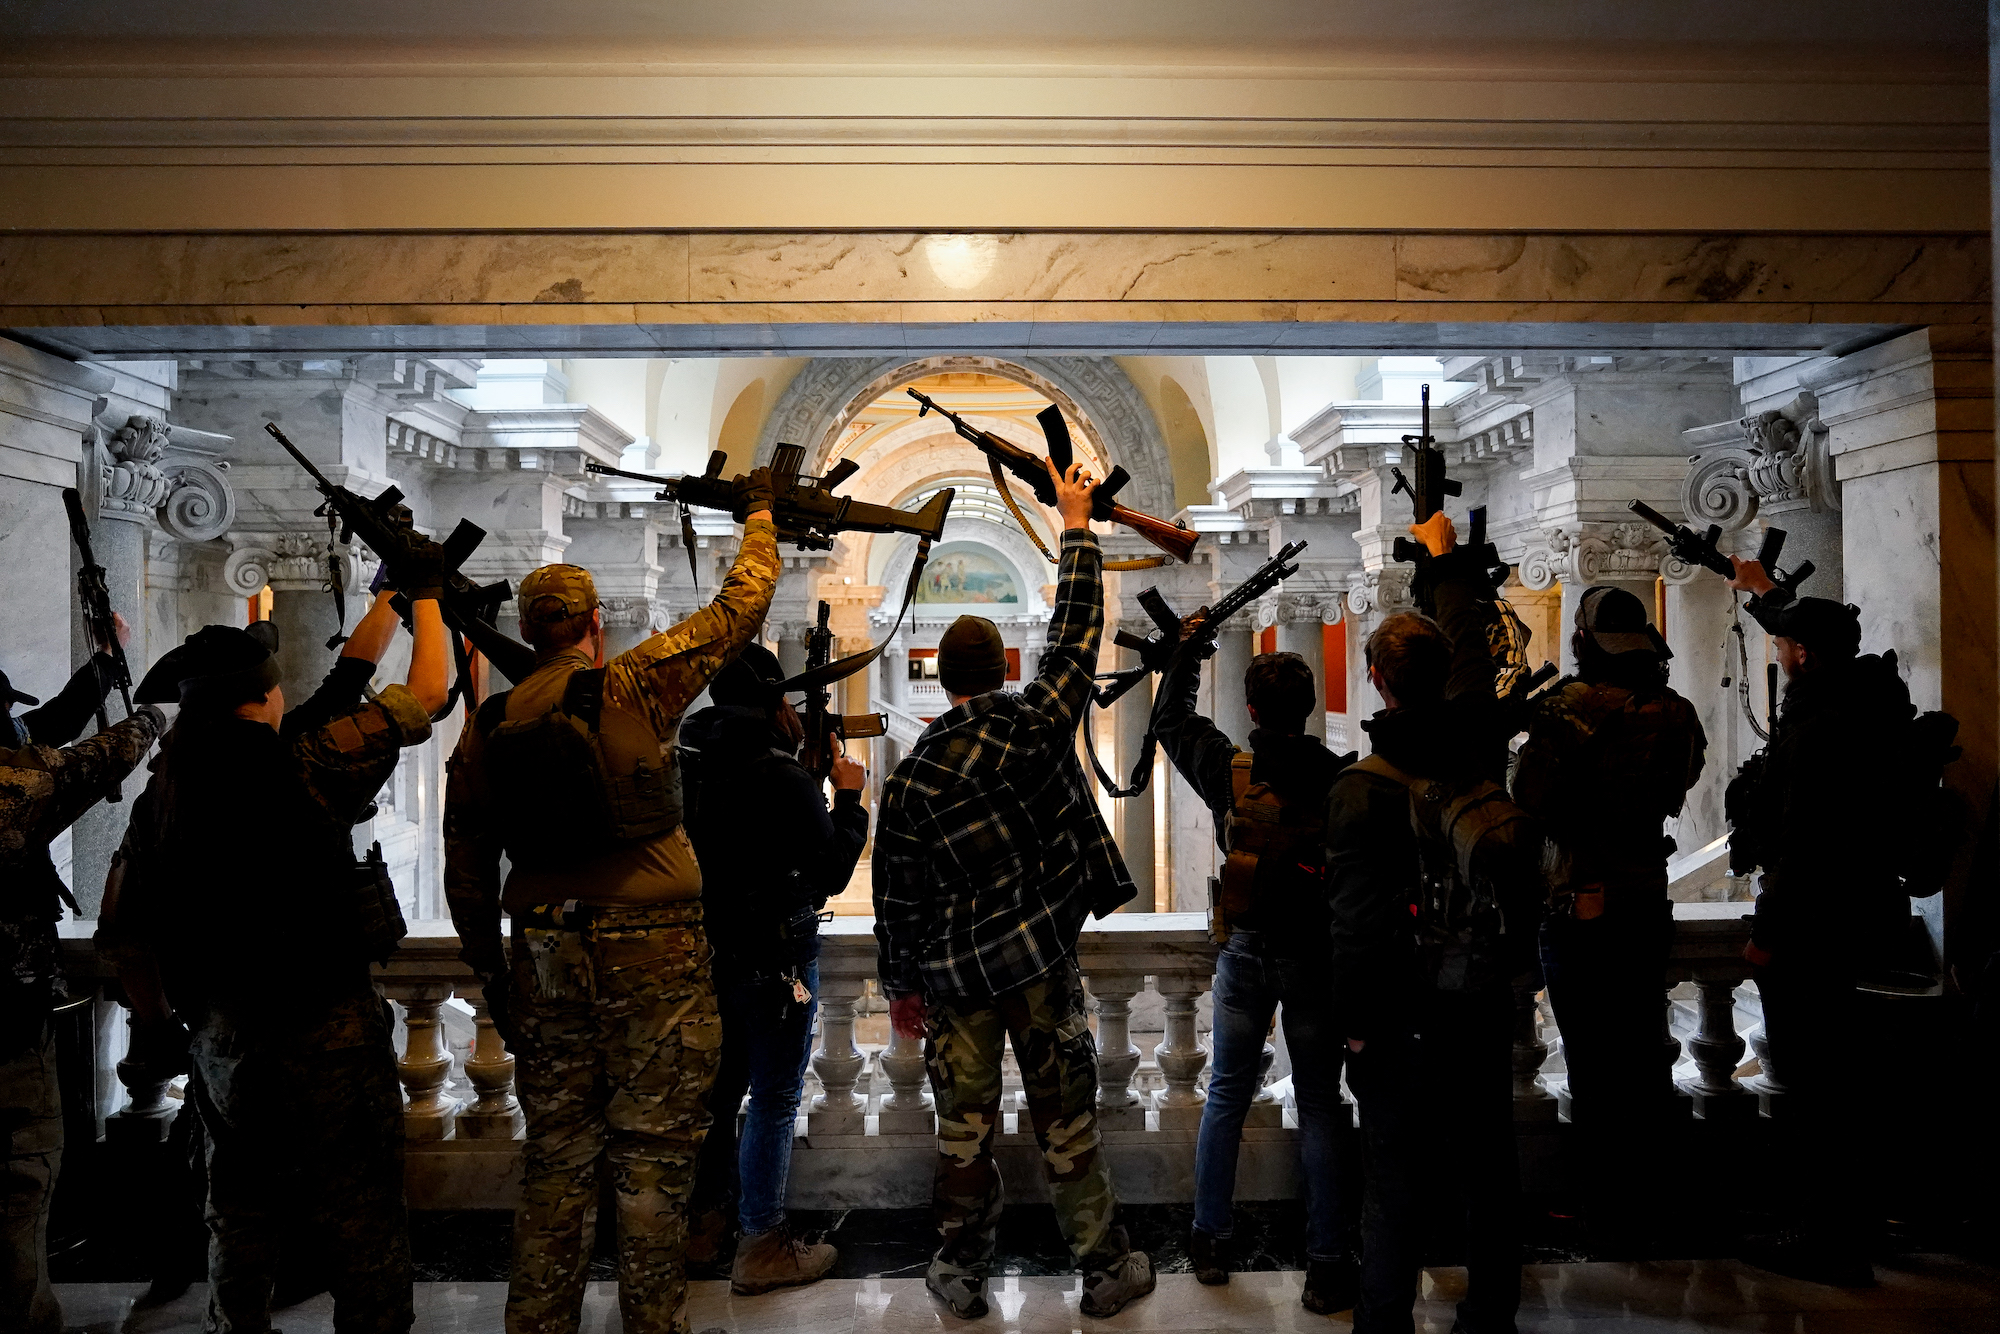 Fully Armed Rally-Goers Enter Kentucky's Capitol Building ...